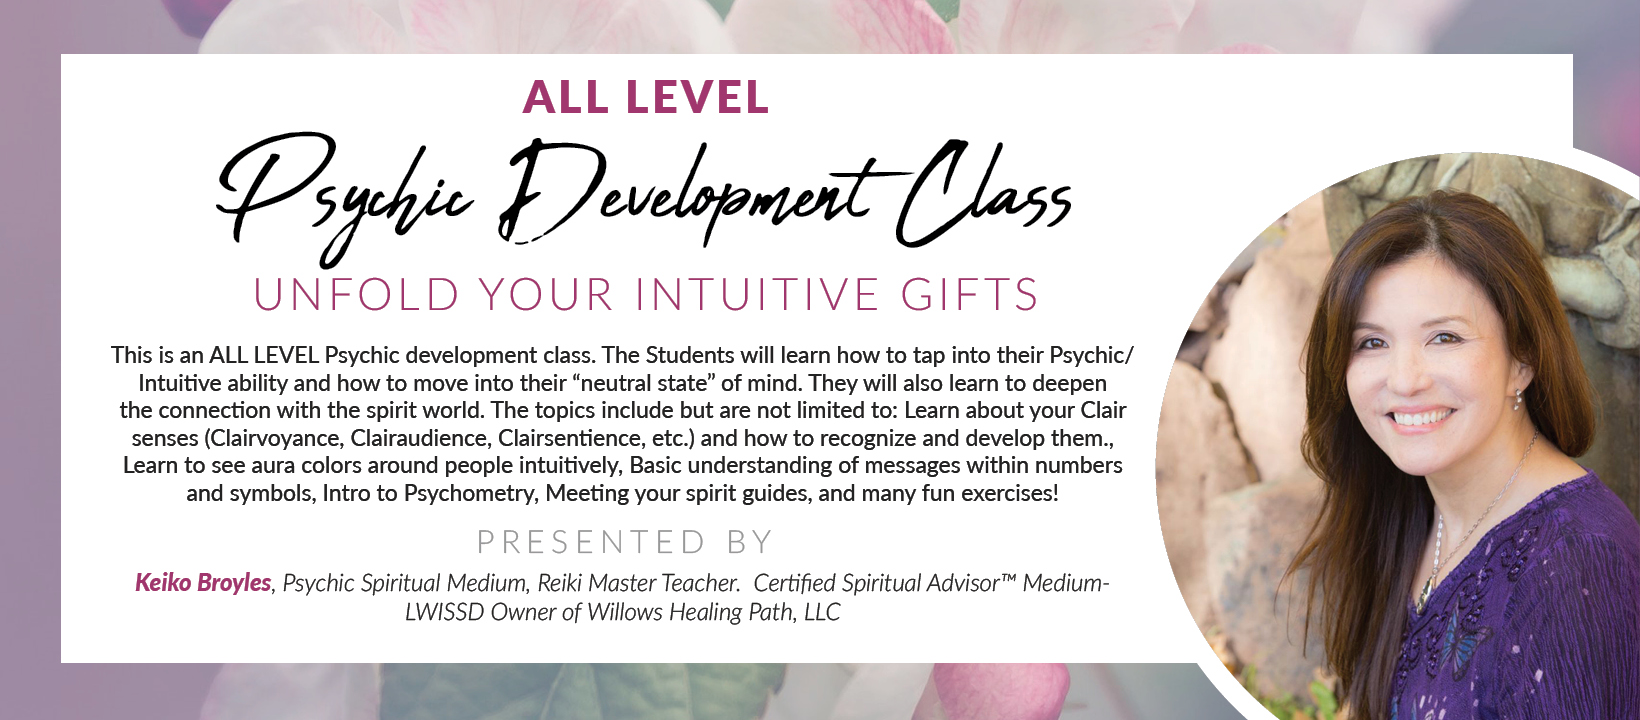 All Level Psychic Development Class via Zoom - Unfold your Intuitive gifts